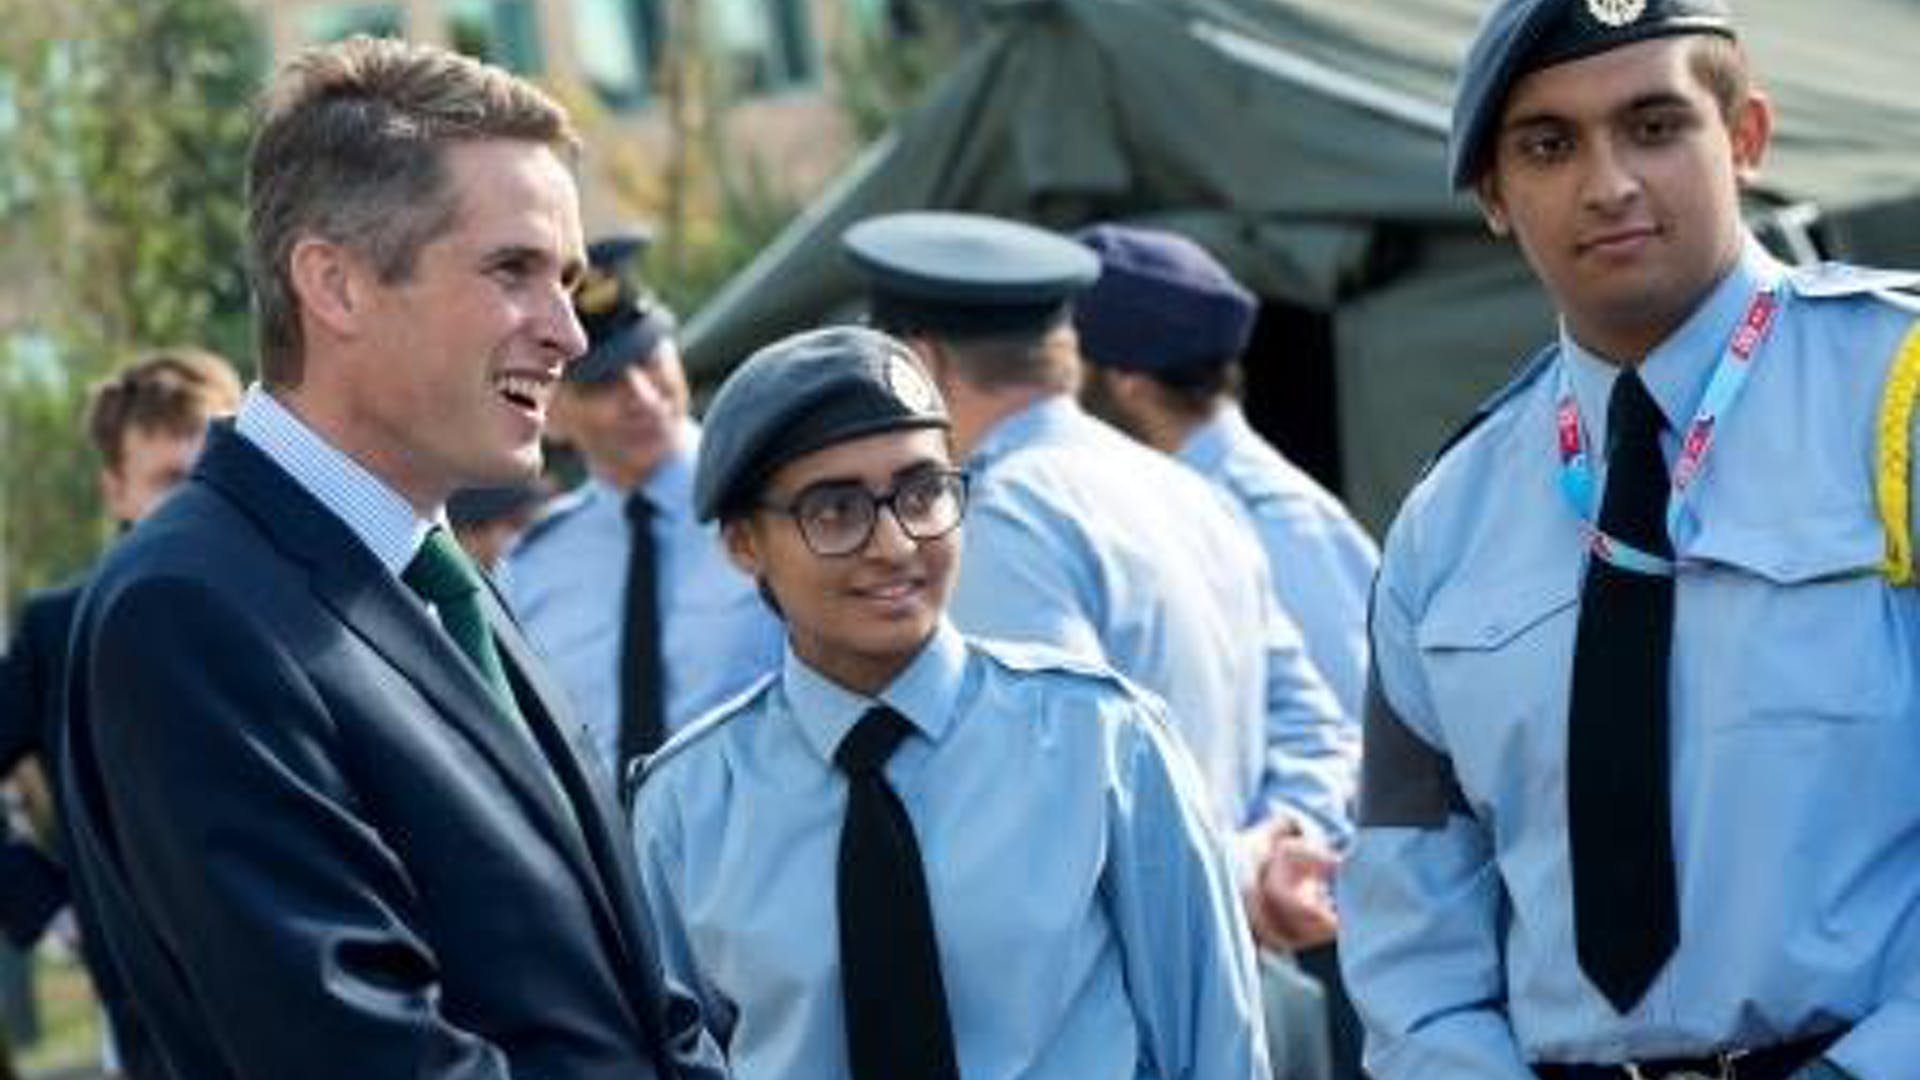 APOWAL 2018 030 DEFENCE SECRETARY CADETS VISIT 419 compressed